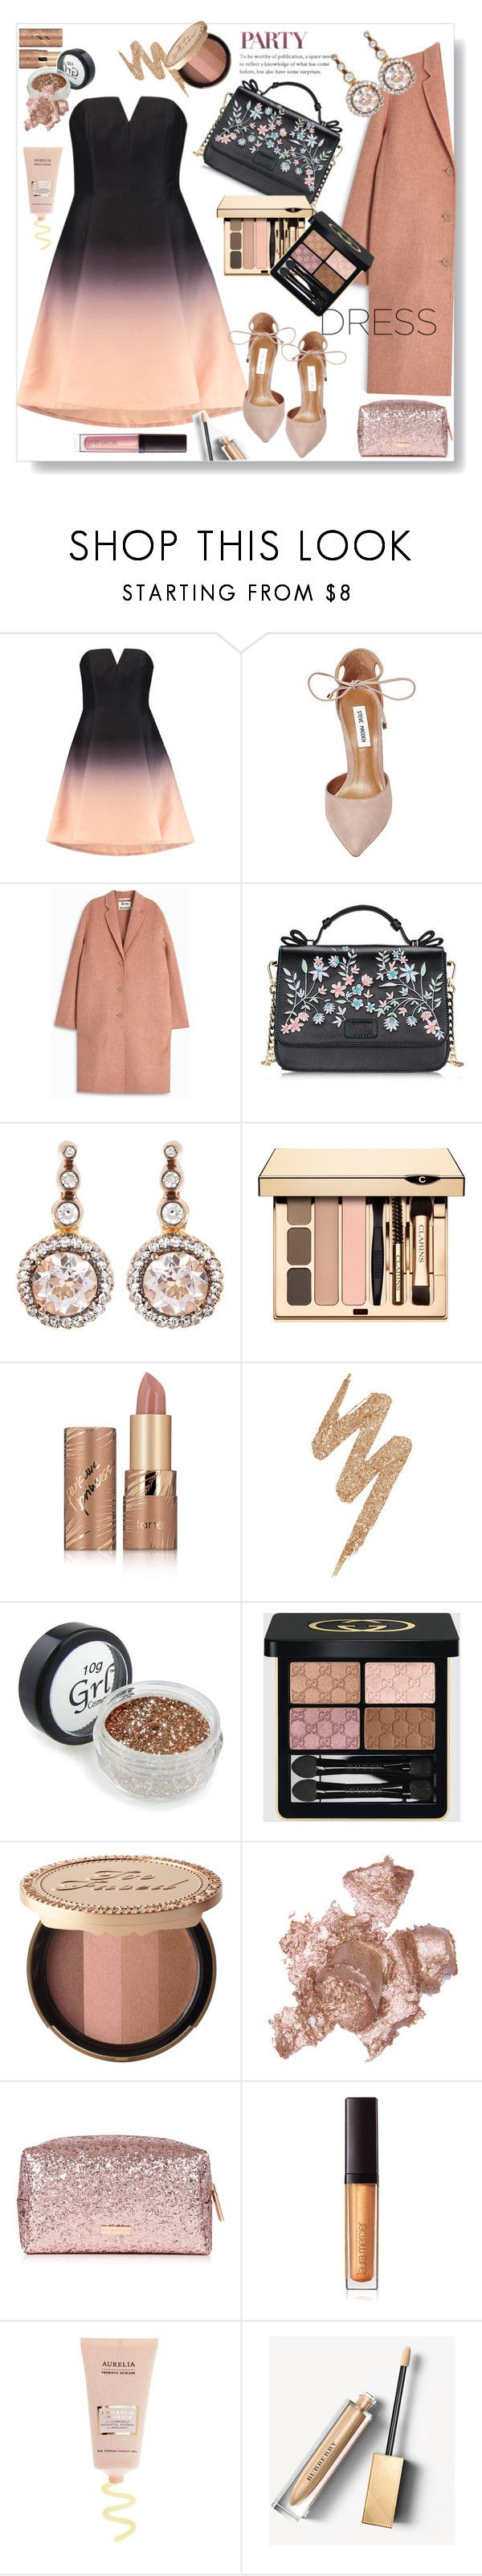 """""""Part dress.."""" by gul07 ❤ liked on Polyvore featuring Halston Heritage, Steve Madden, Acne Studios, Selim Mouzannar, tarte, Urban Decay, Gucci, Too Faced Cosmetics, By Terry and Laura Mercier"""